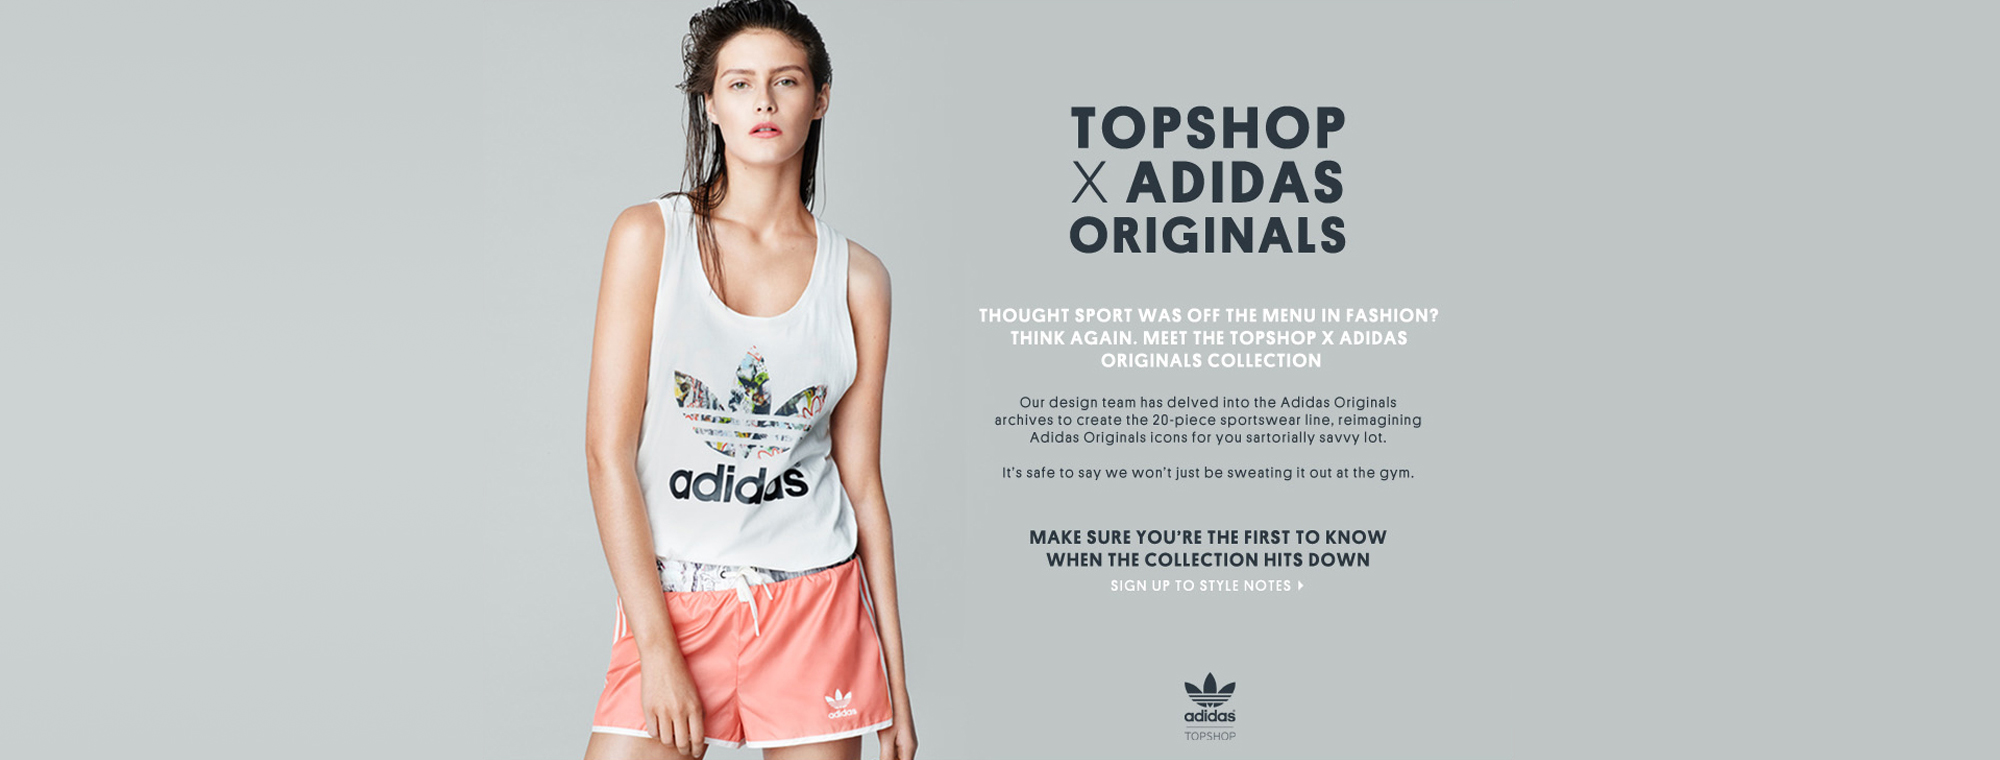 Adidas-Originals-Top-Shop-Header2